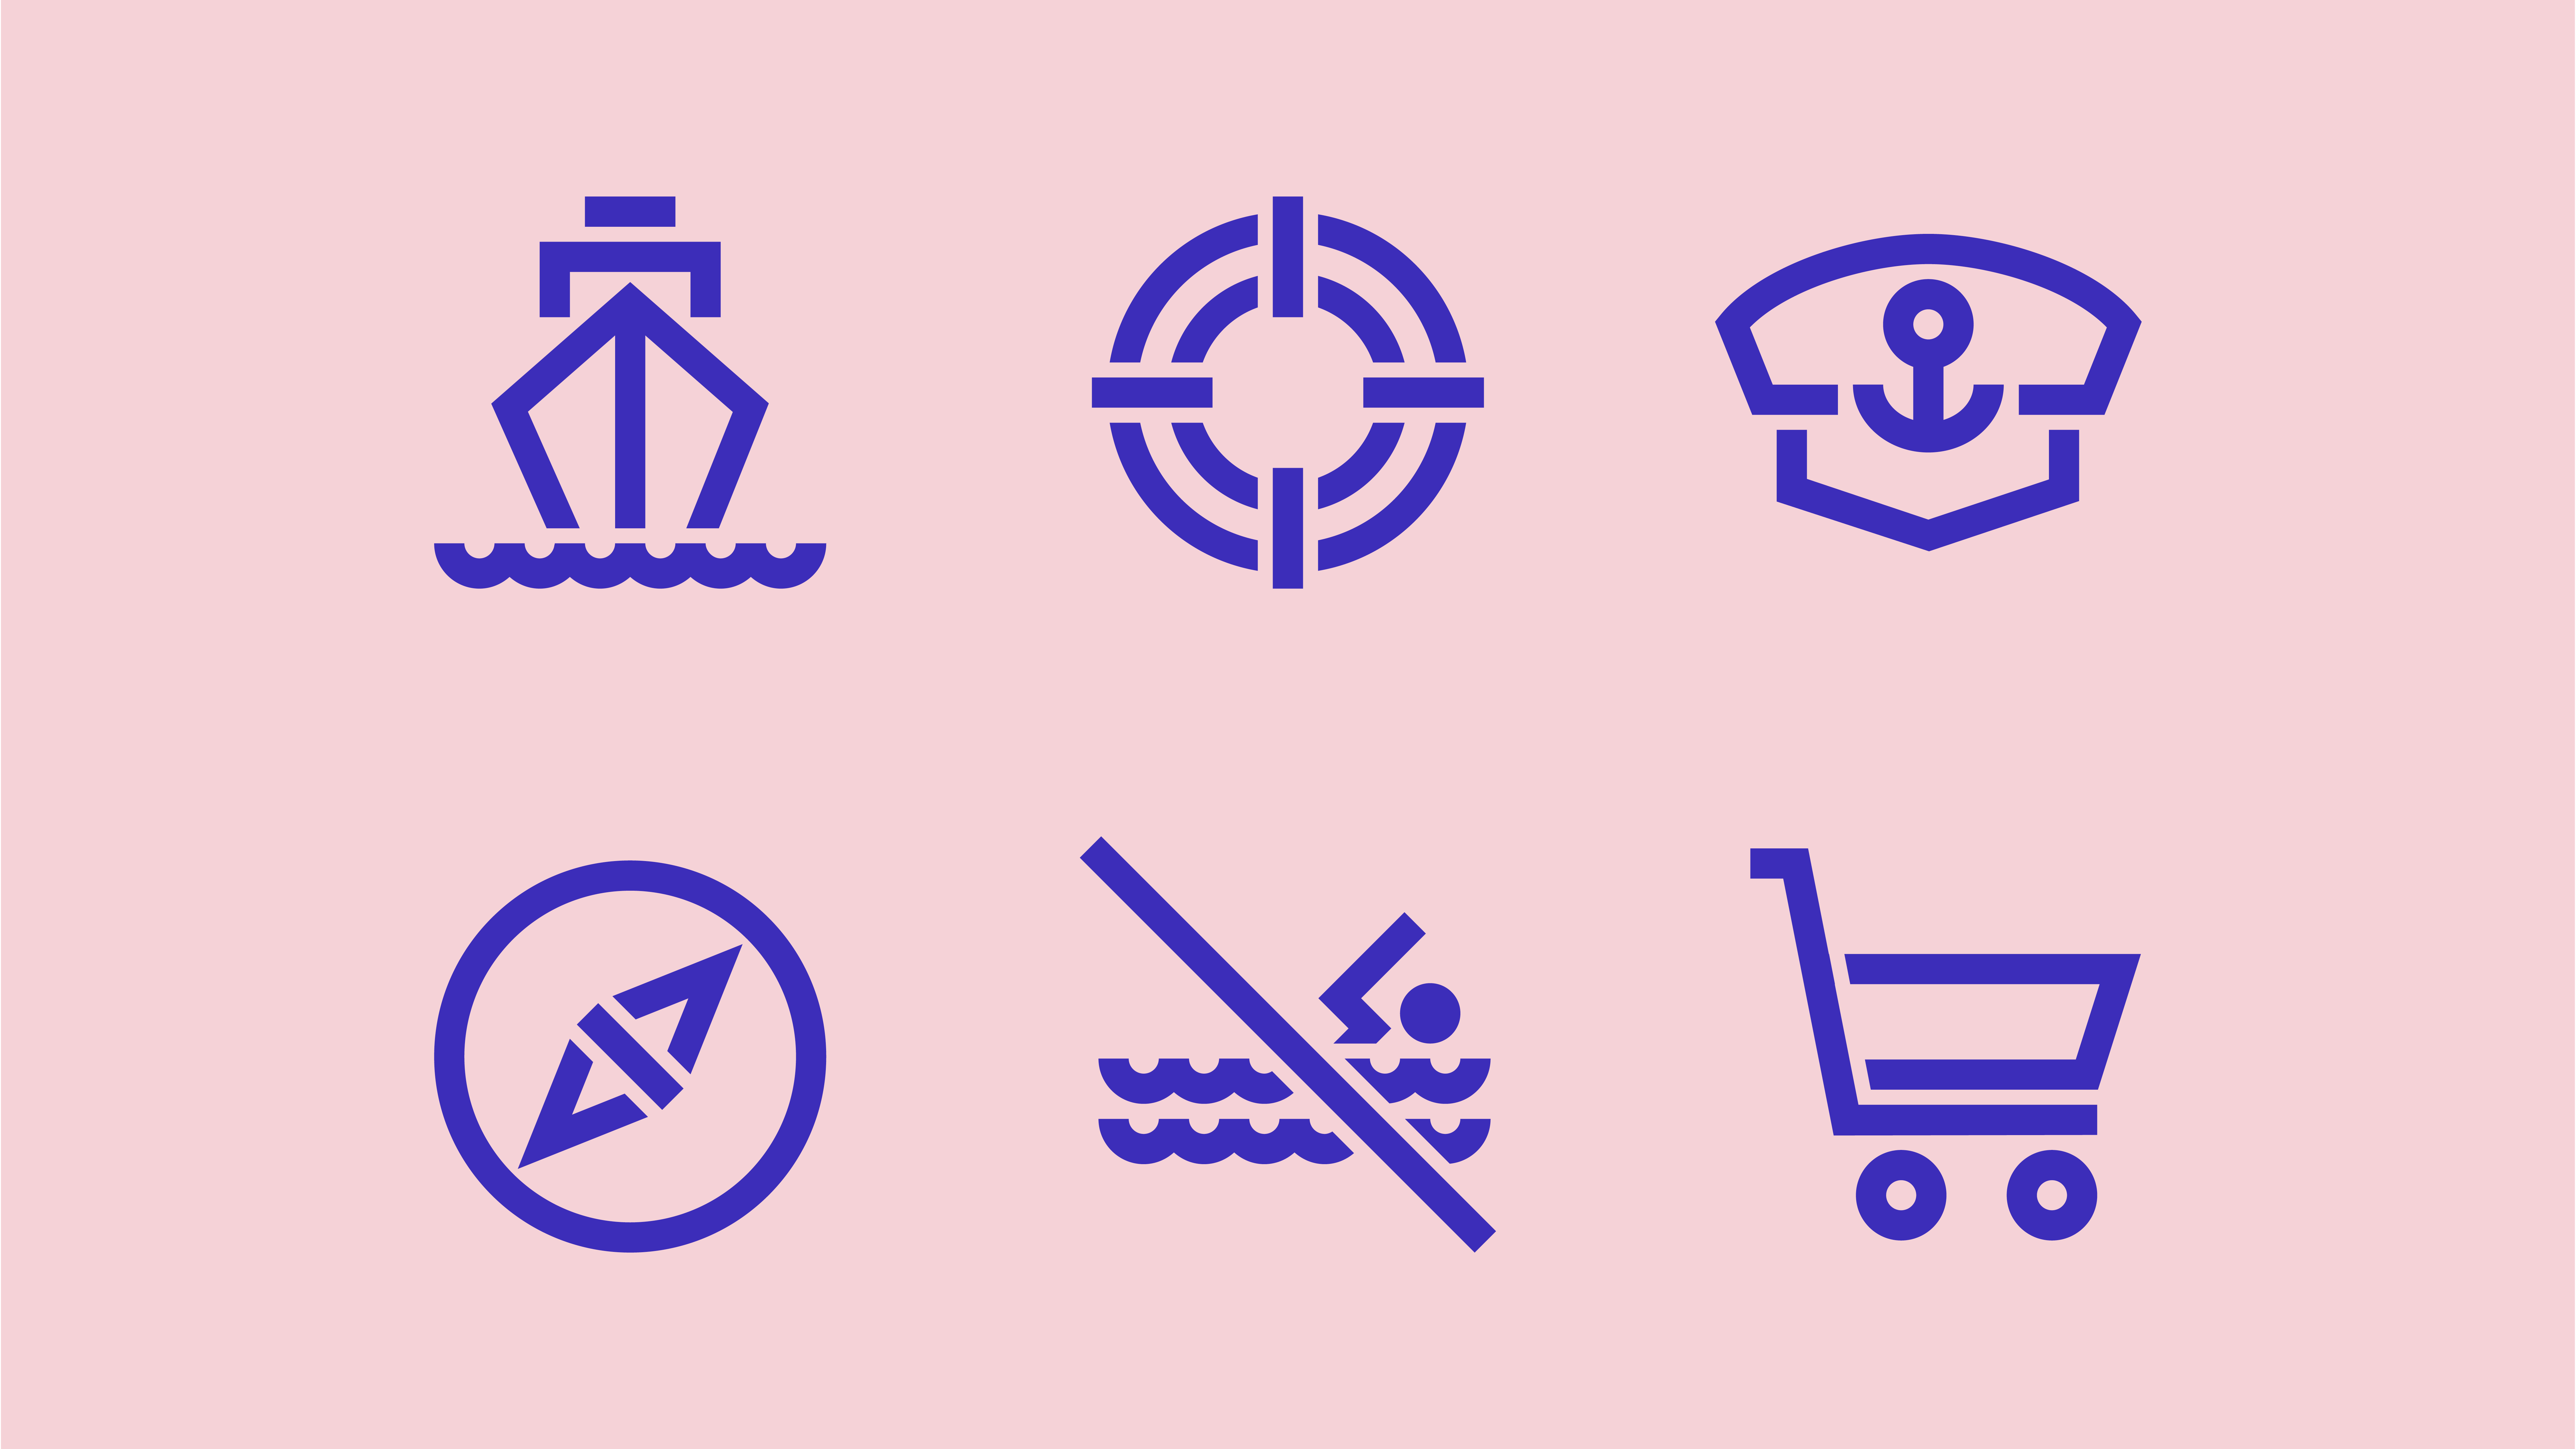 DH_Iconography